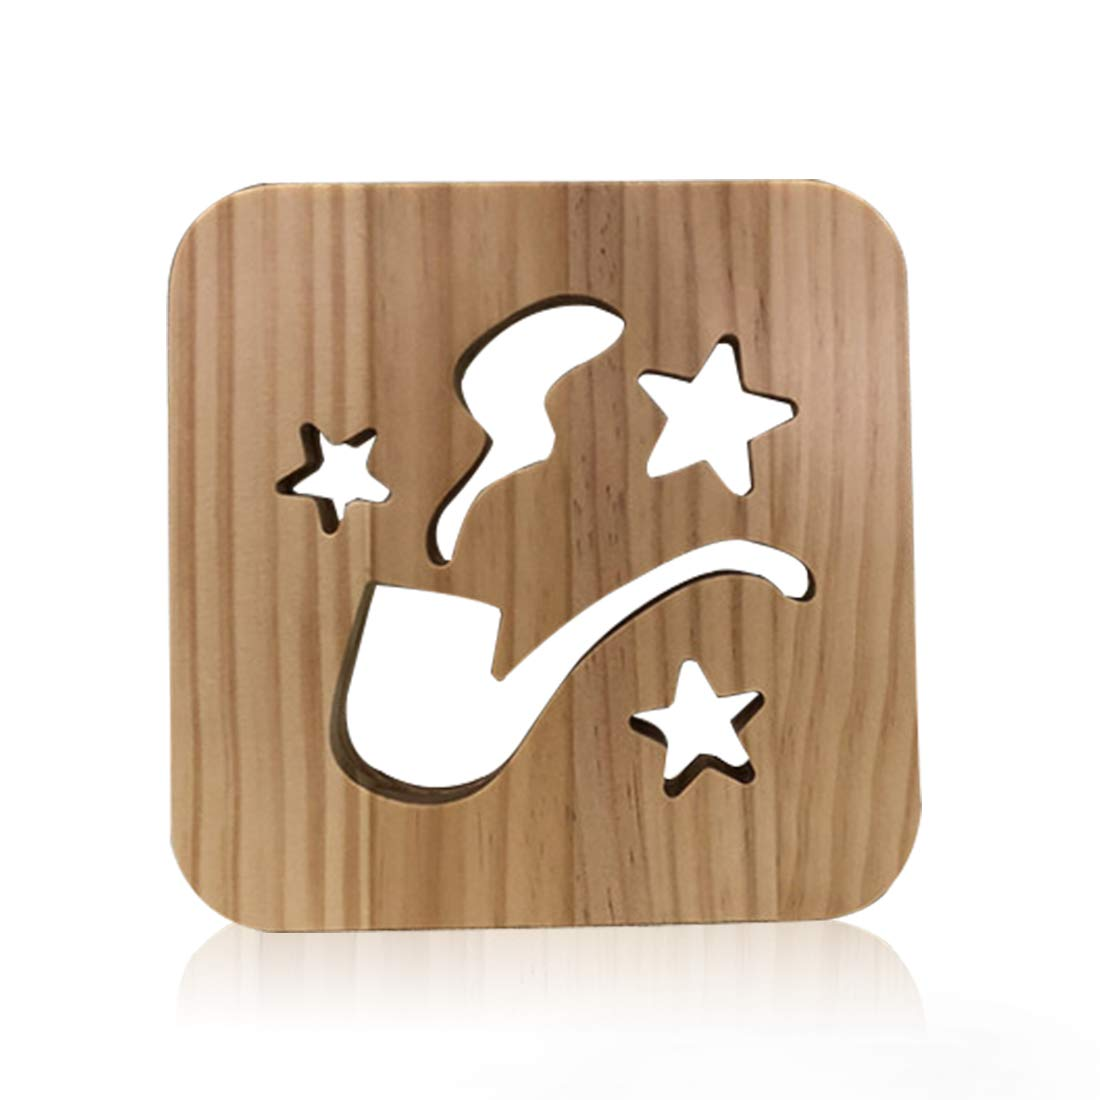 Wooden Smoking Led Lamp for Children, LeKong 3D Wooden Carving Patterns, USB Plug in, Gift for Birthday & Friendship, Fit for Halloween & Christmas Decoration, 2018 New